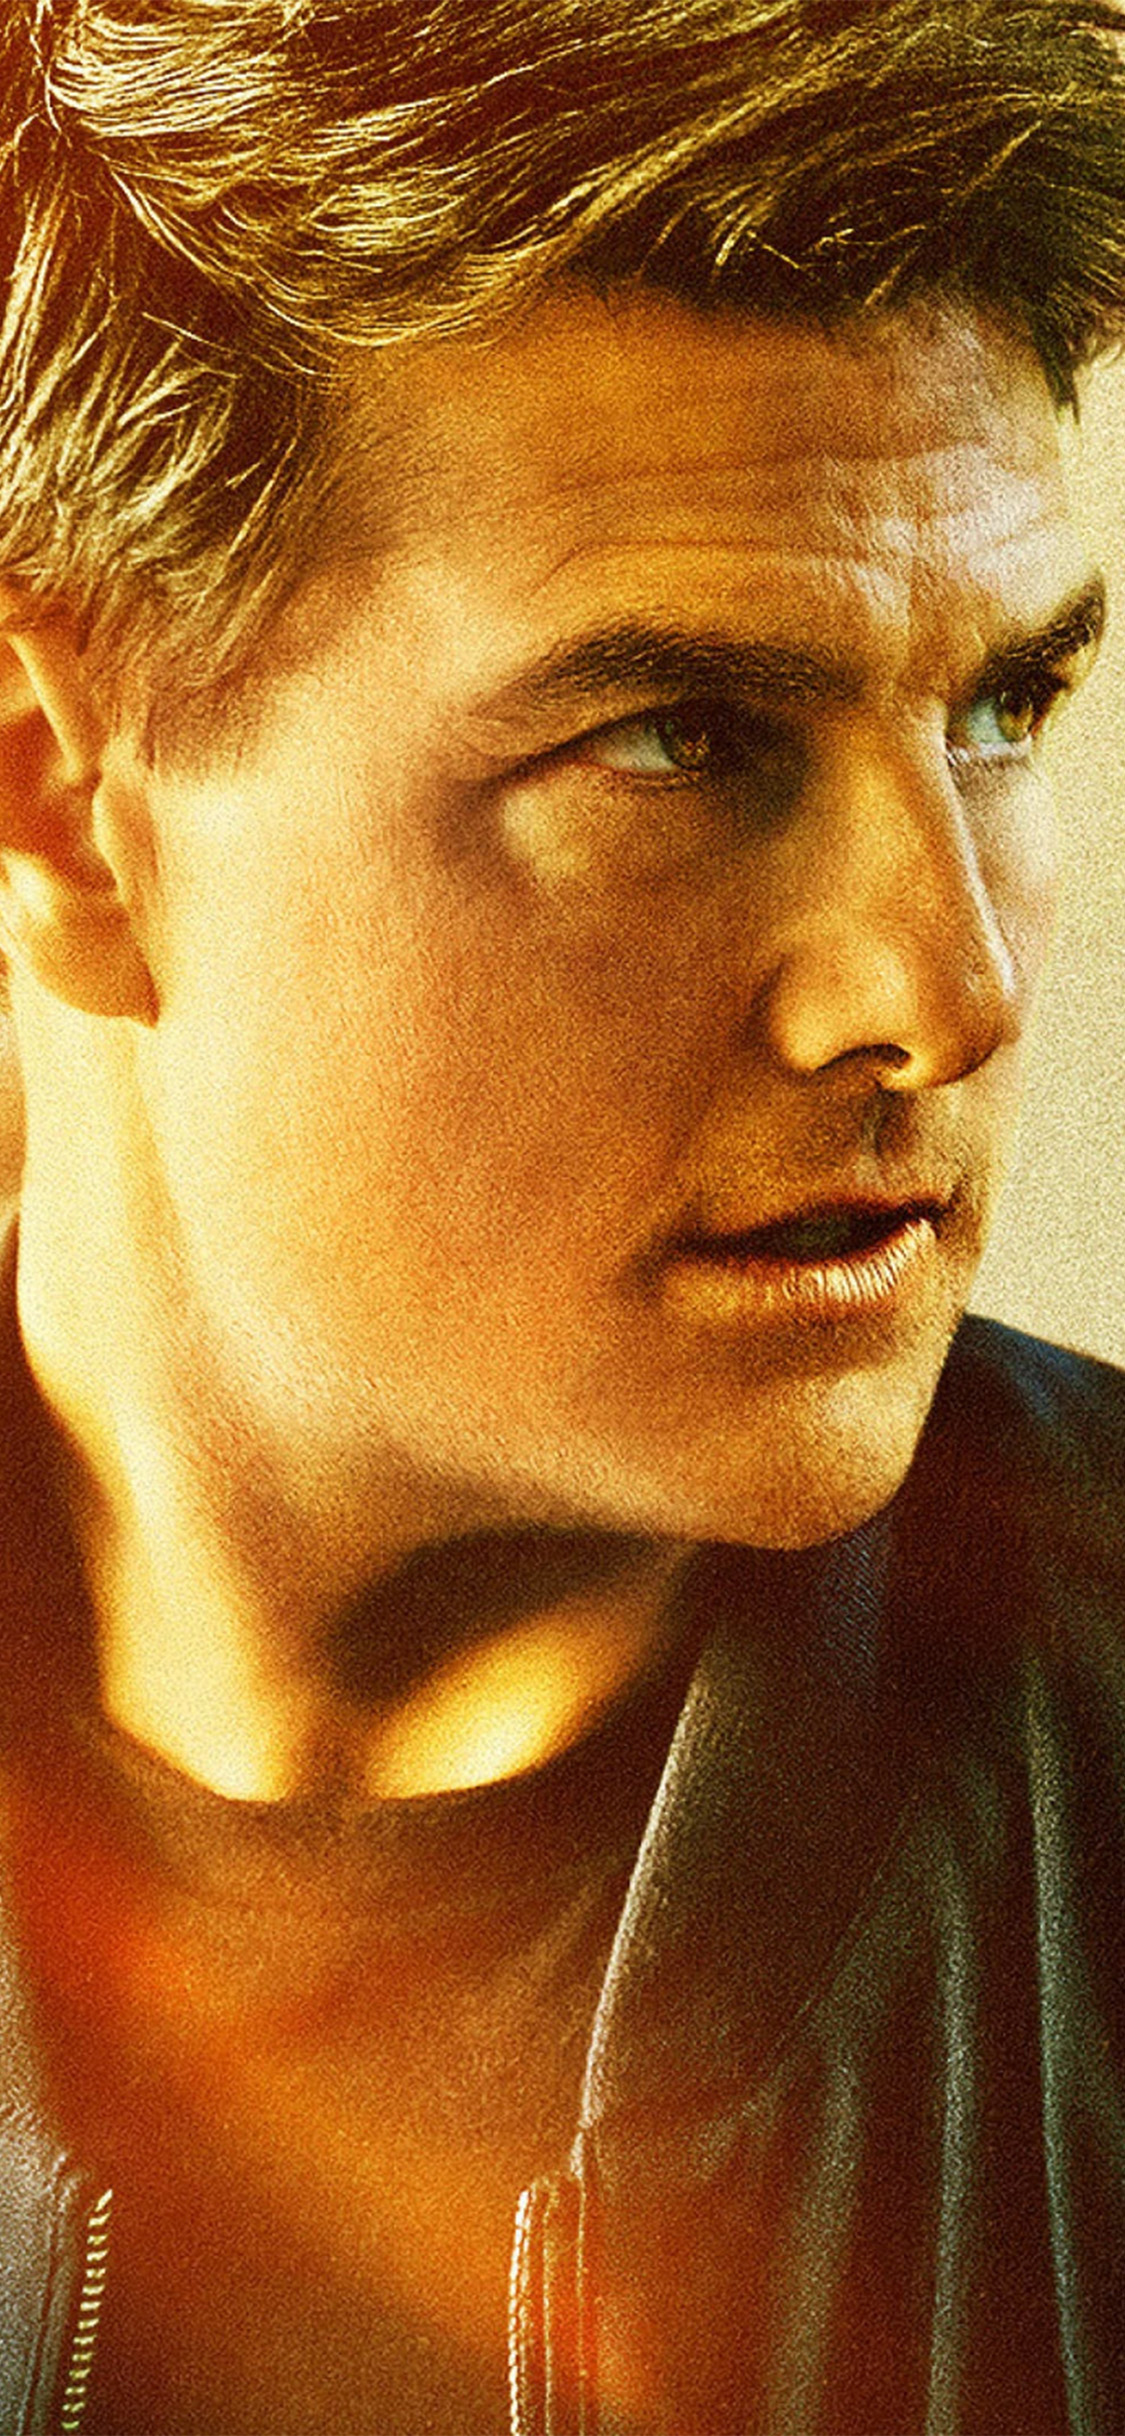 iPhonexpapers.com-Apple-iPhone-wallpaper-bf83-missin-impossible-tom-cruise-fallout-film-art